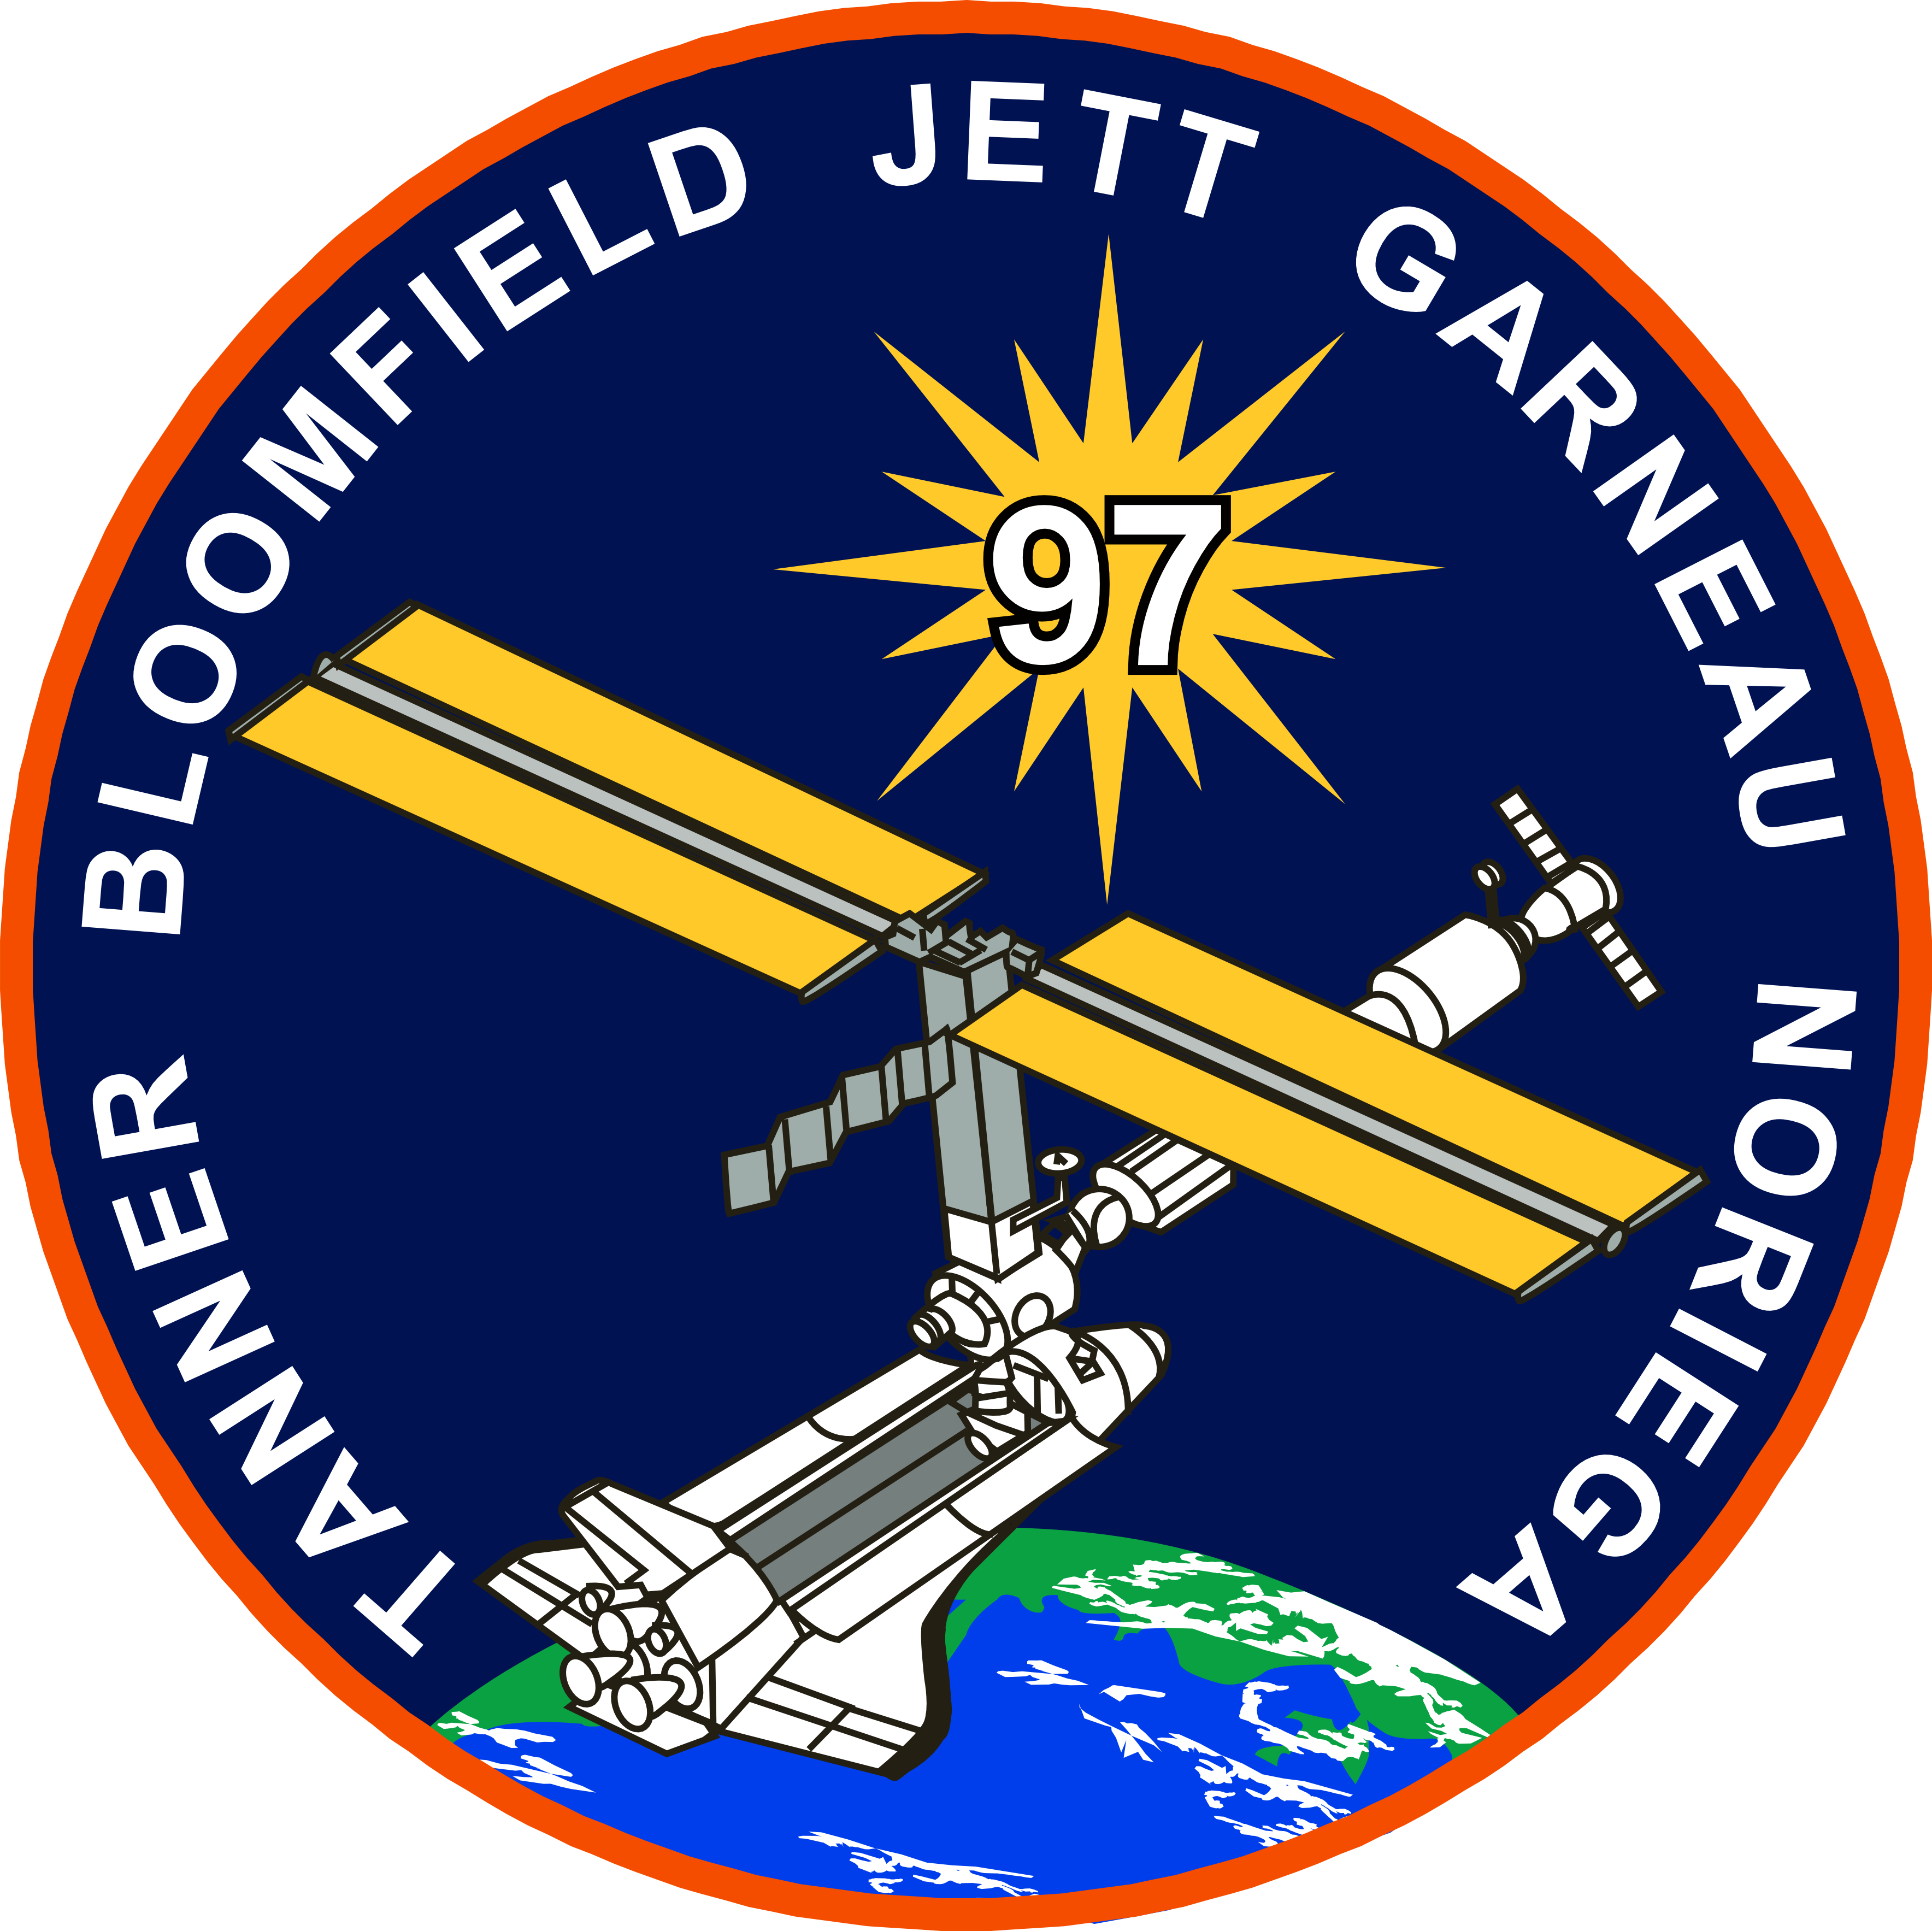 http://upload.wikimedia.org/wikipedia/commons/4/45/Sts-97-patch.png